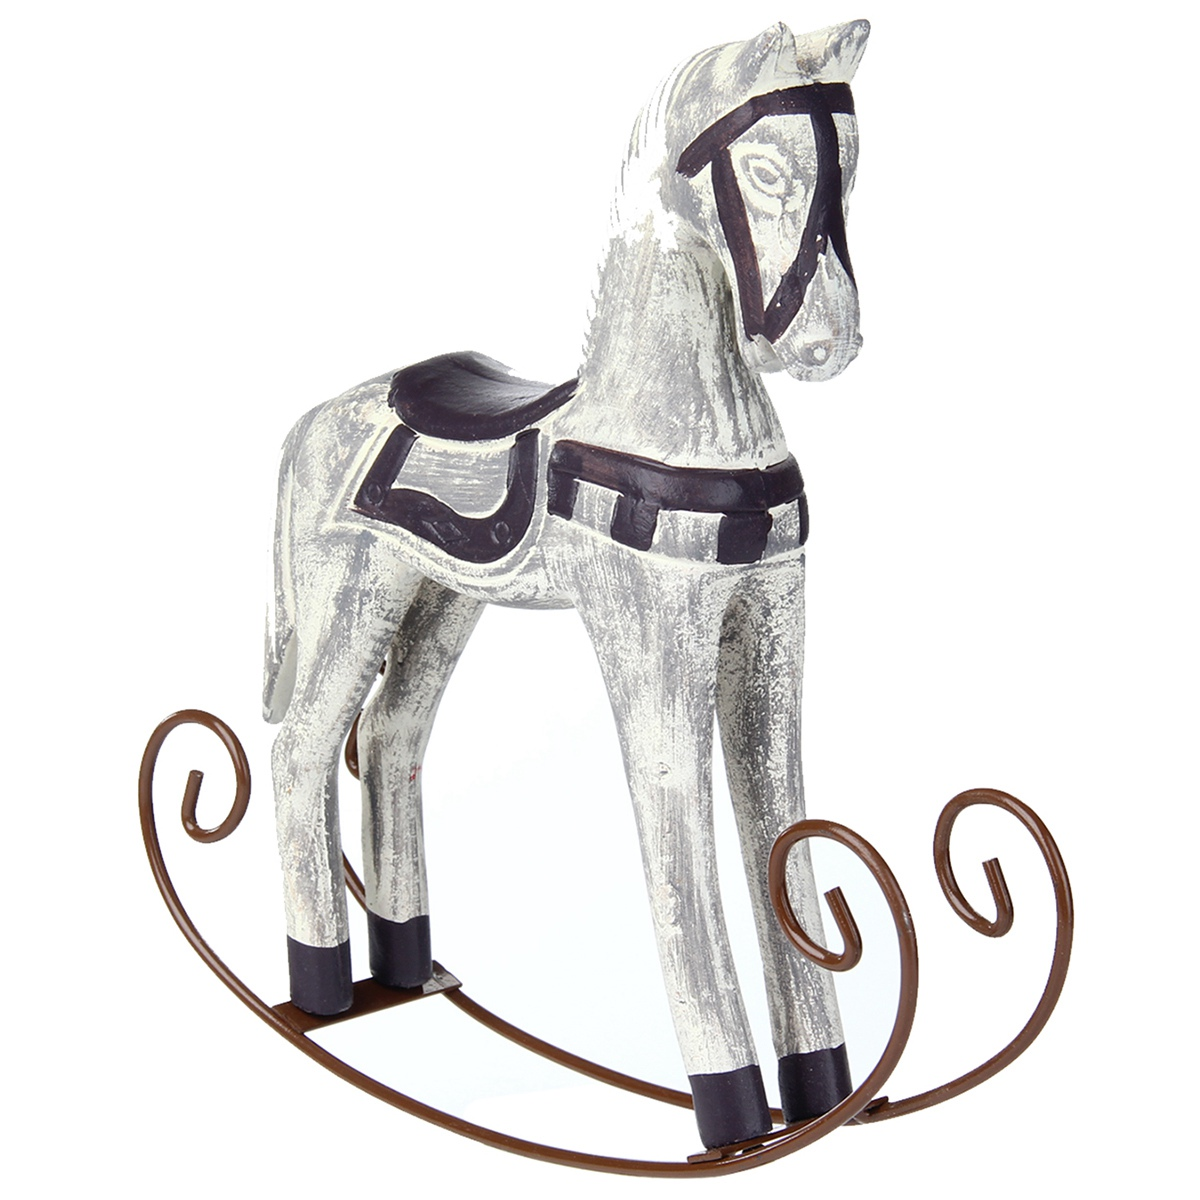 LBER Modern Europe Style Trojan Horse Statue Wedding Decor Wood Horse Retro Home Decoration Accessories Rocking Horse Ornament